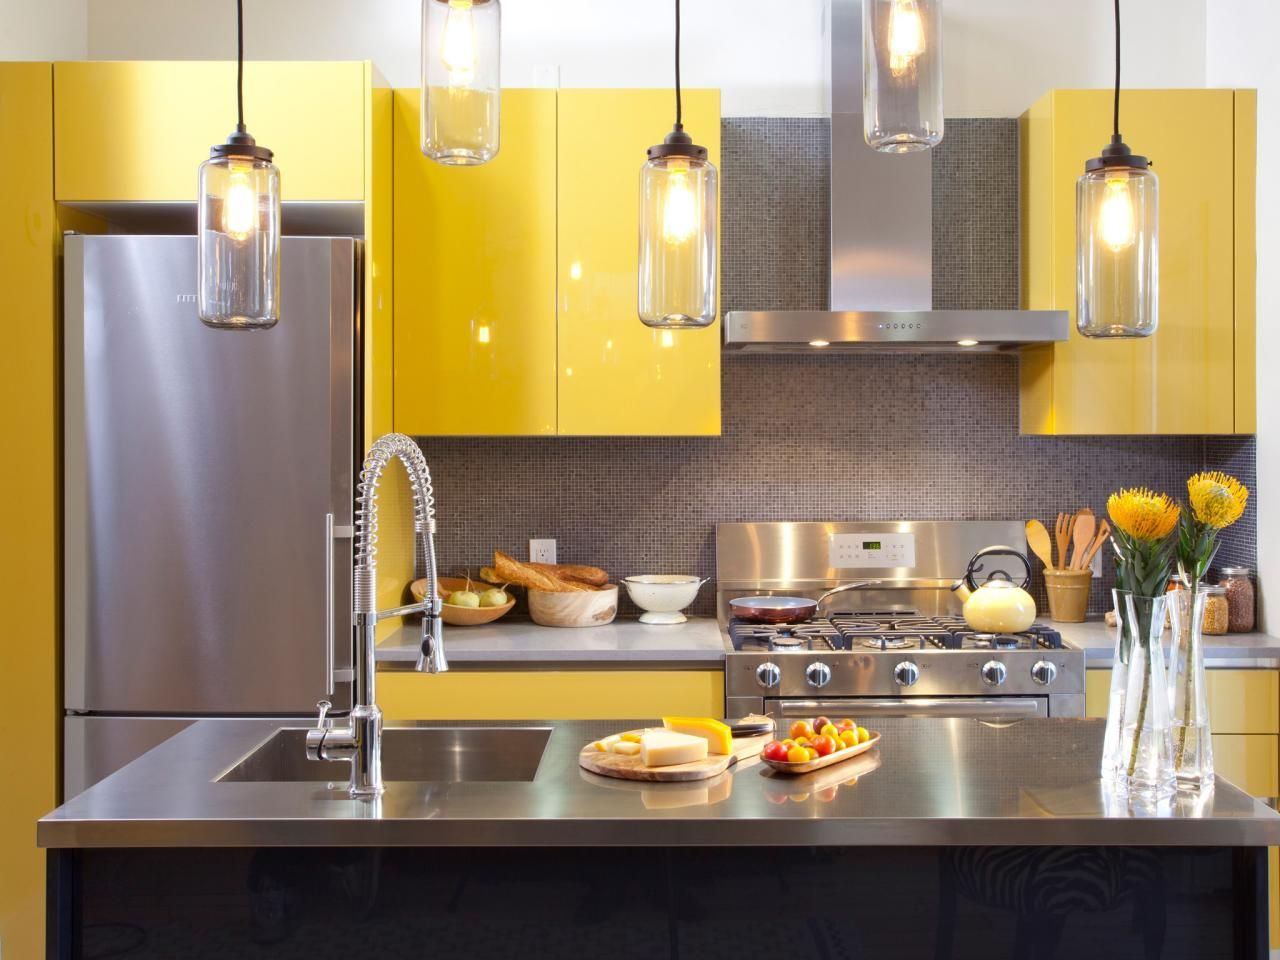 Cheap Kitchen Cabinets Yellow Kitchen Cabinets Kitchen Cabinet Remodel Modern Kitchen Cabinets